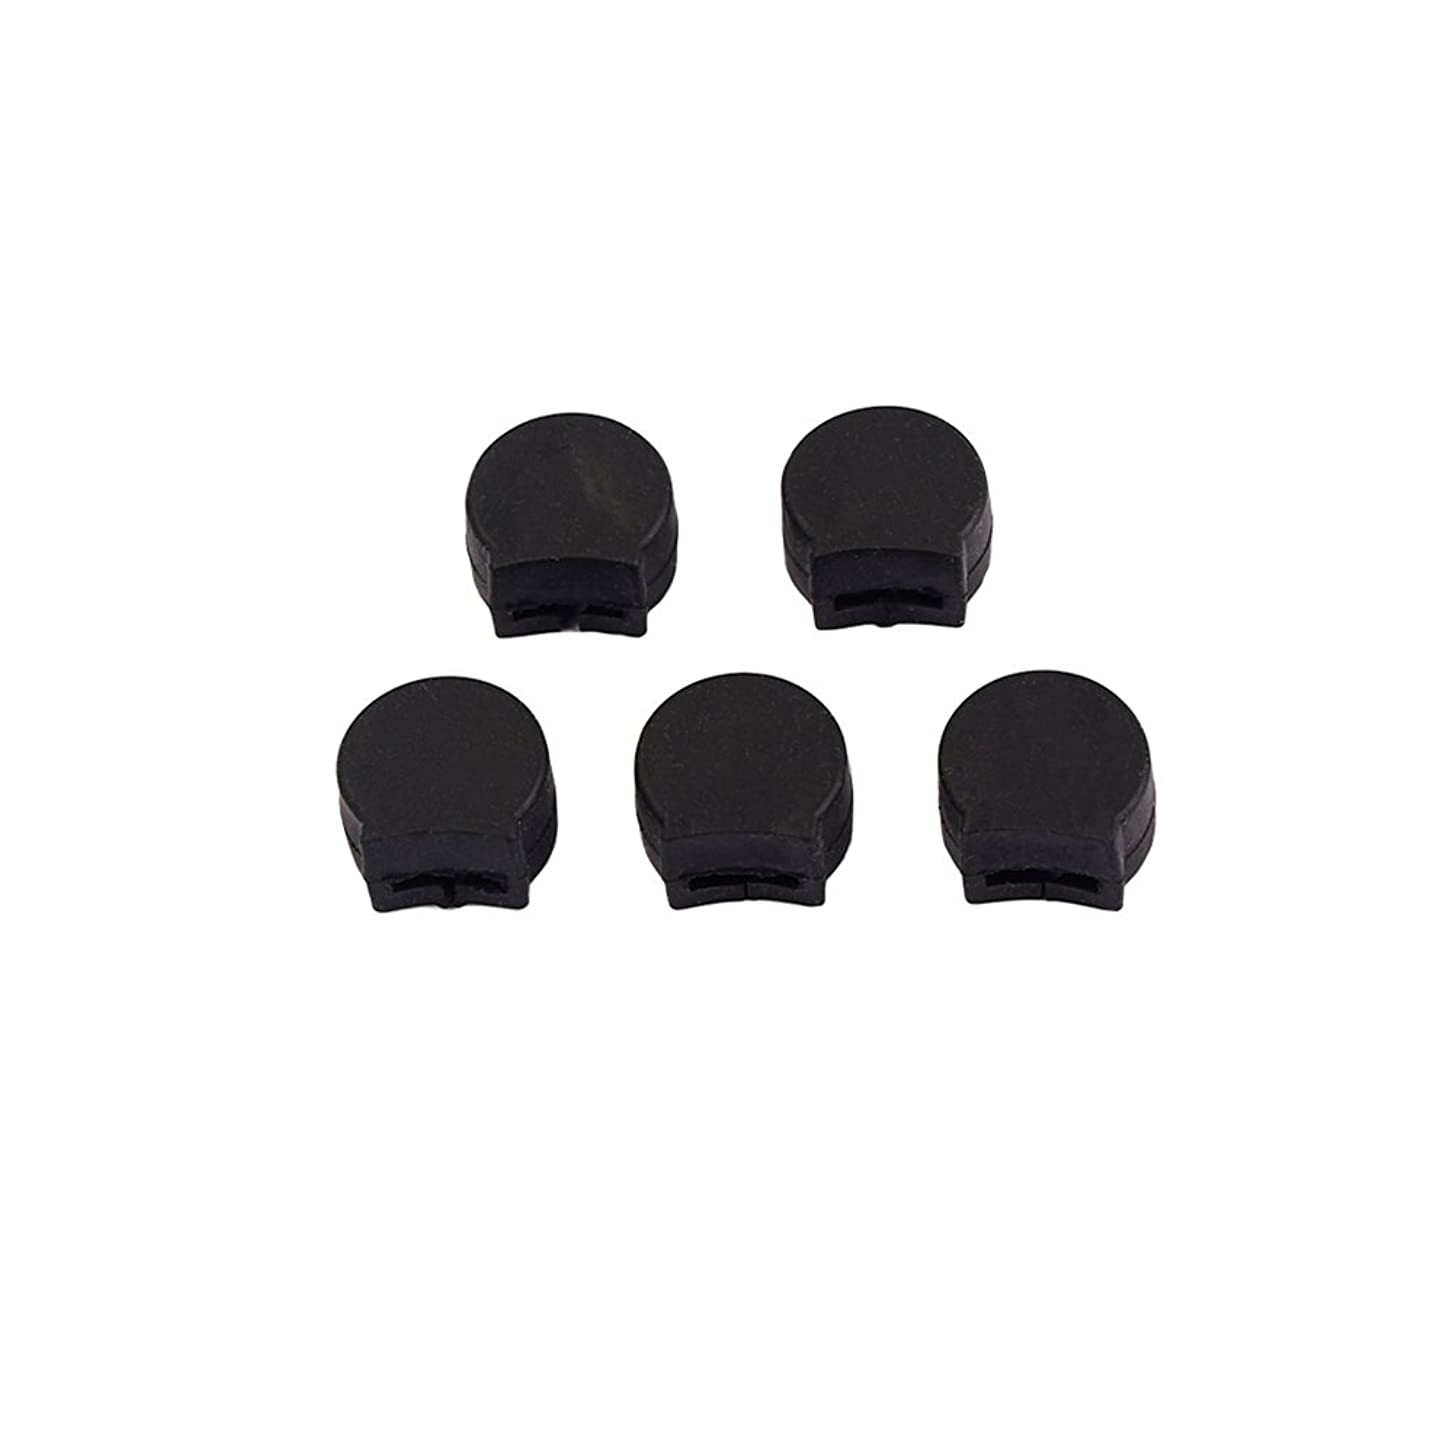 SUPVOX 5pcs Saxophone Thumb Rest Rubber Finger Cushion Pad Thumb Protector for Sax Wind Instruments